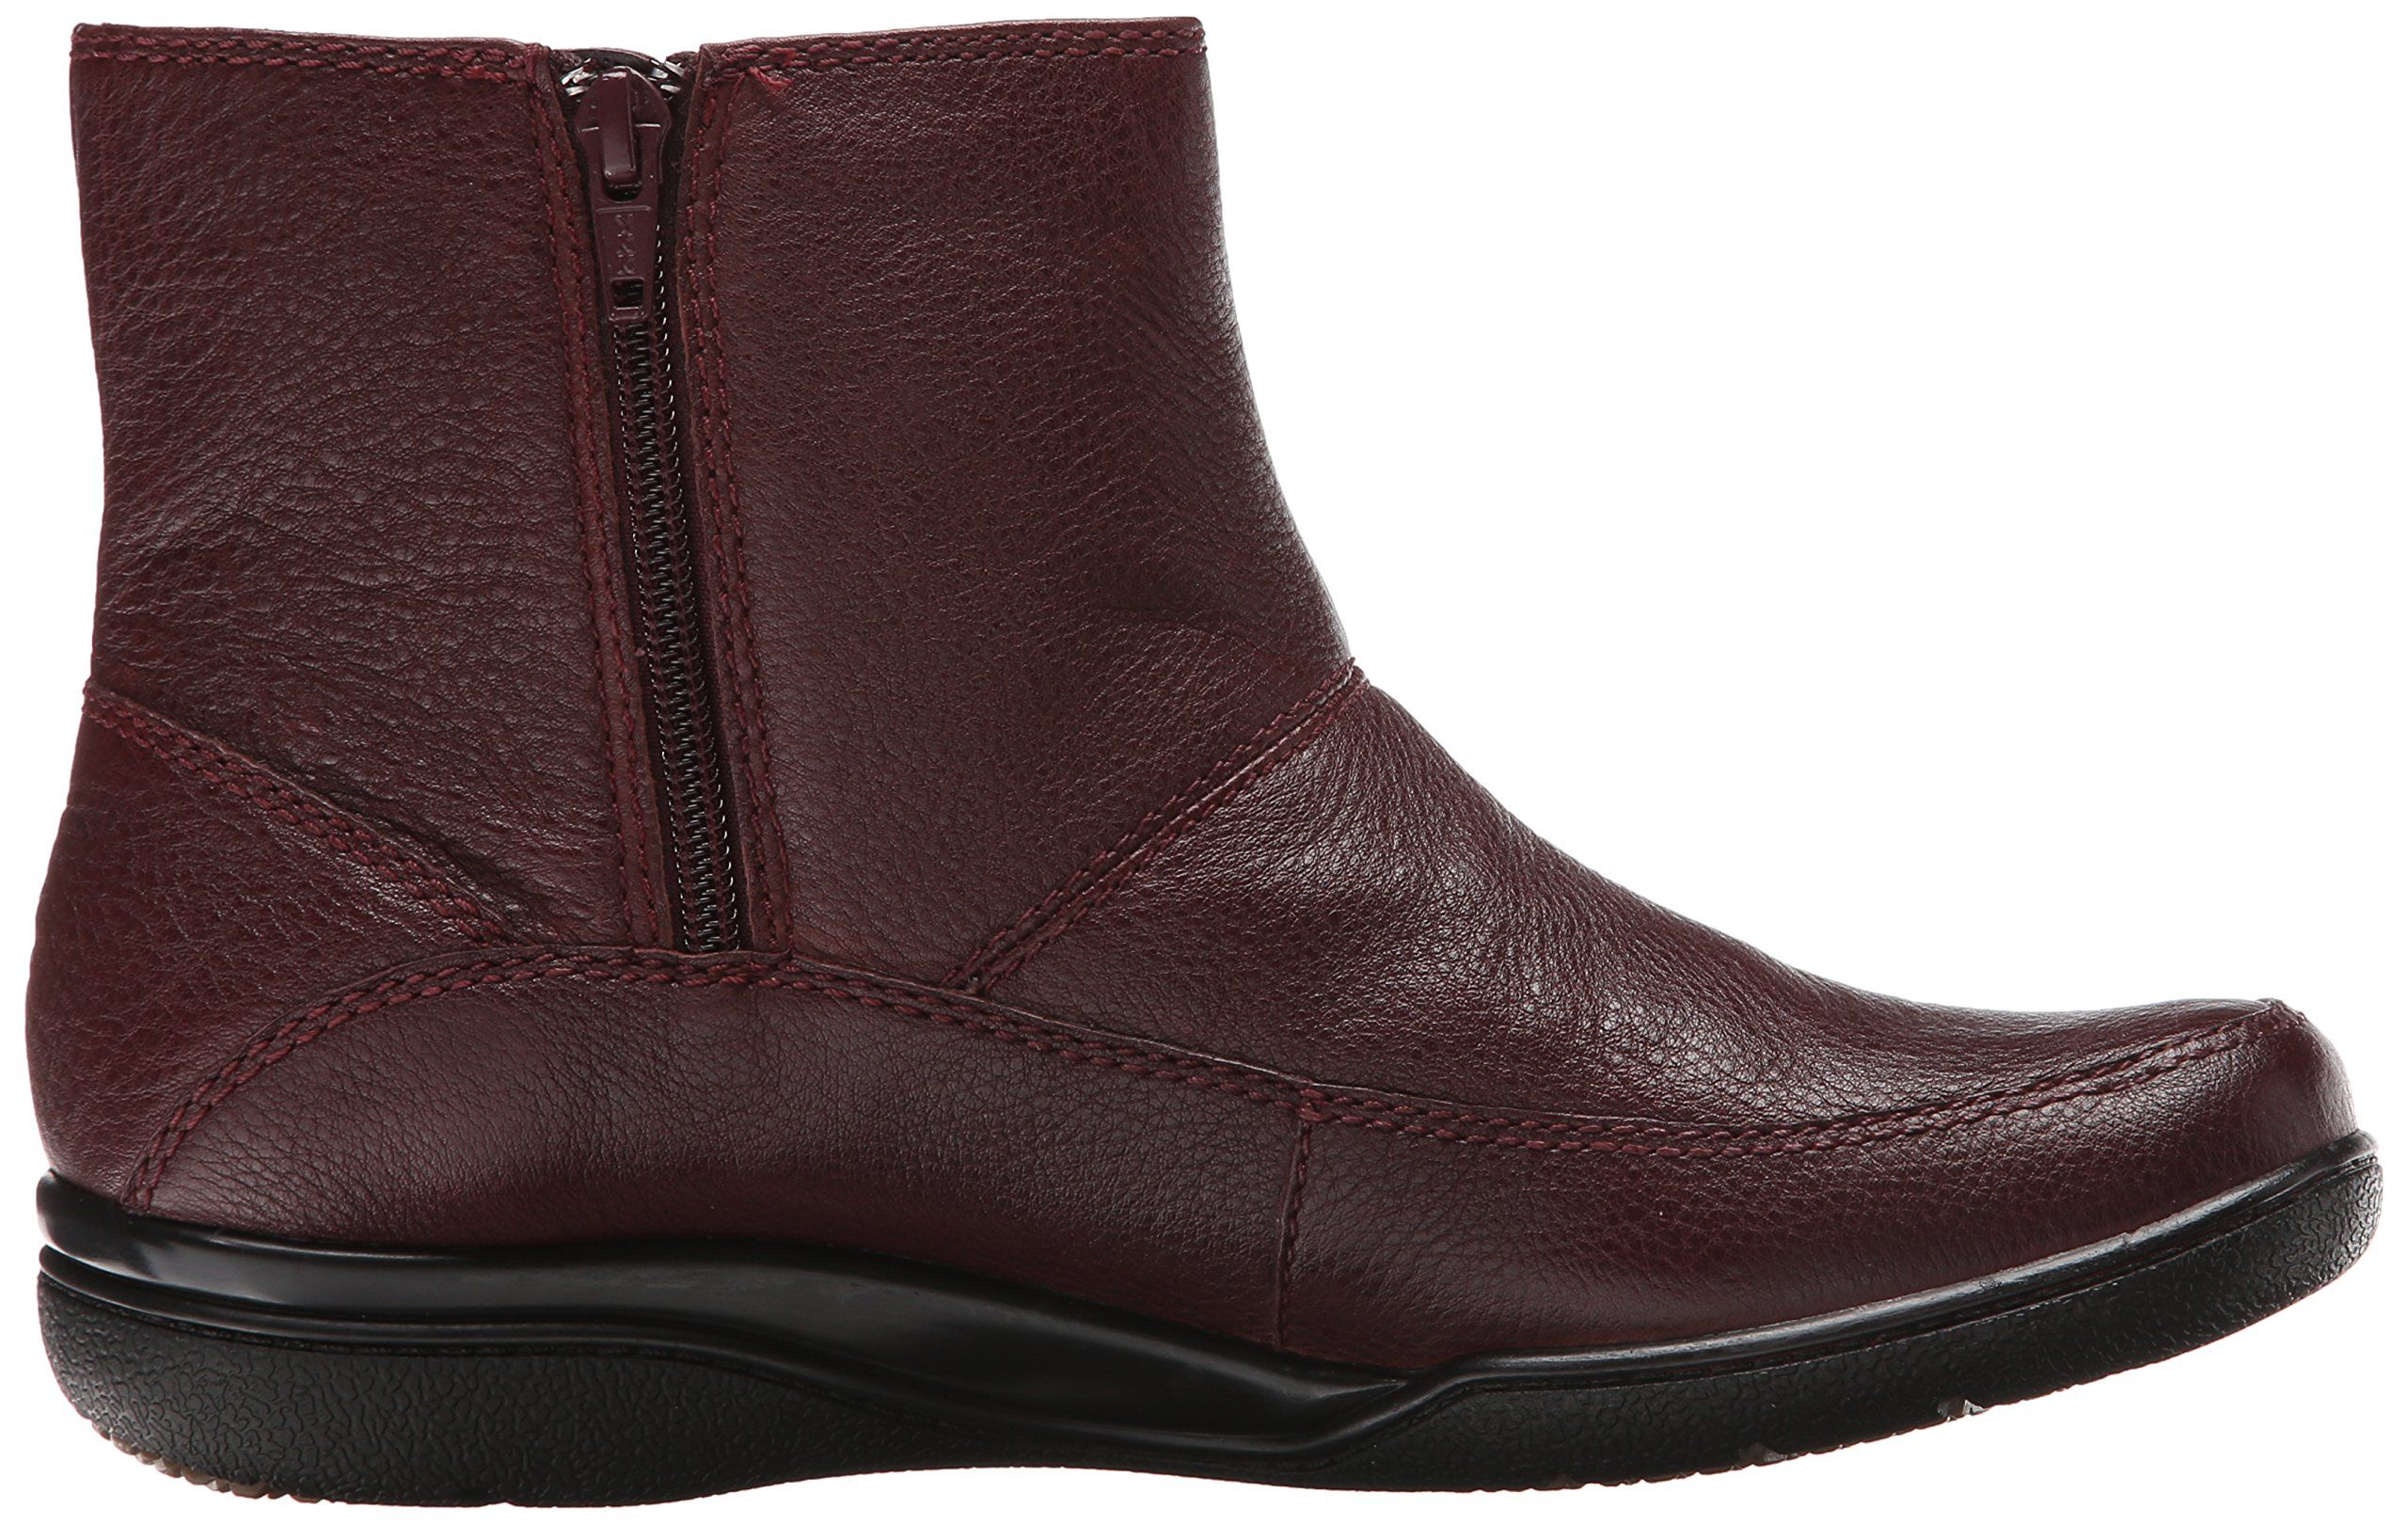 0b24f7c9 CLARKS Womens Kearns Flame Boot Burgundy Lined Leather 7 M US ** Visit the  image link more details. (This is an affiliate link and I receive a  commission ...